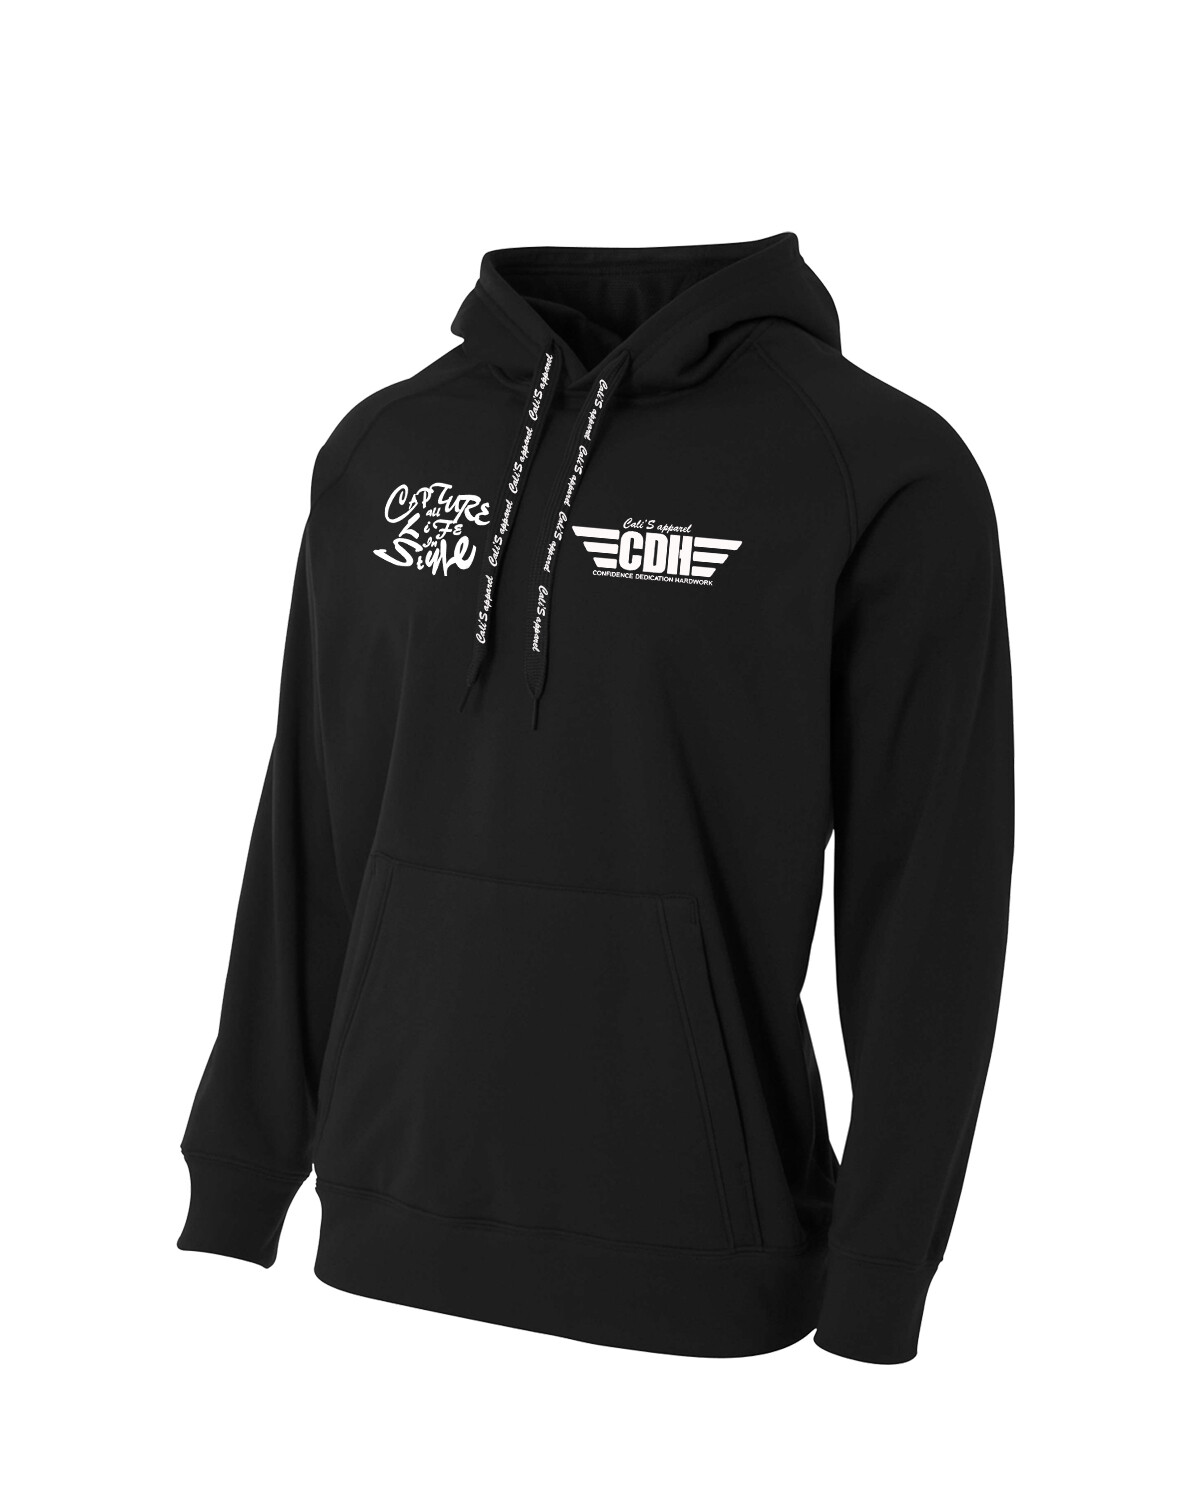 Cali's apparel Graff CDH Wings Black Unisex Fleece Pullover Hoodie